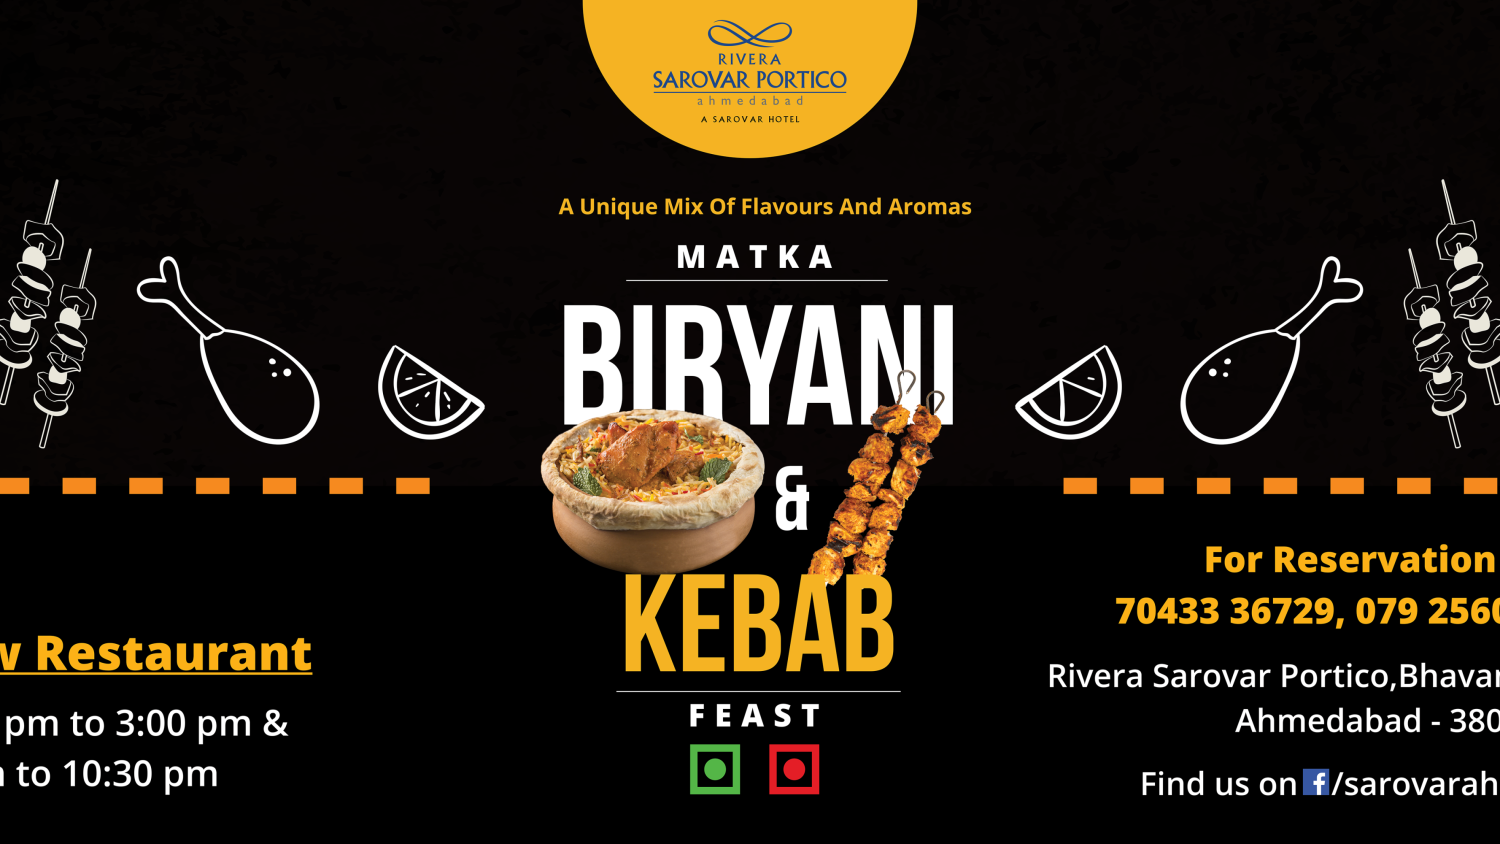 Matka Biryani & kebab Feast at Riveria Sarovar portico